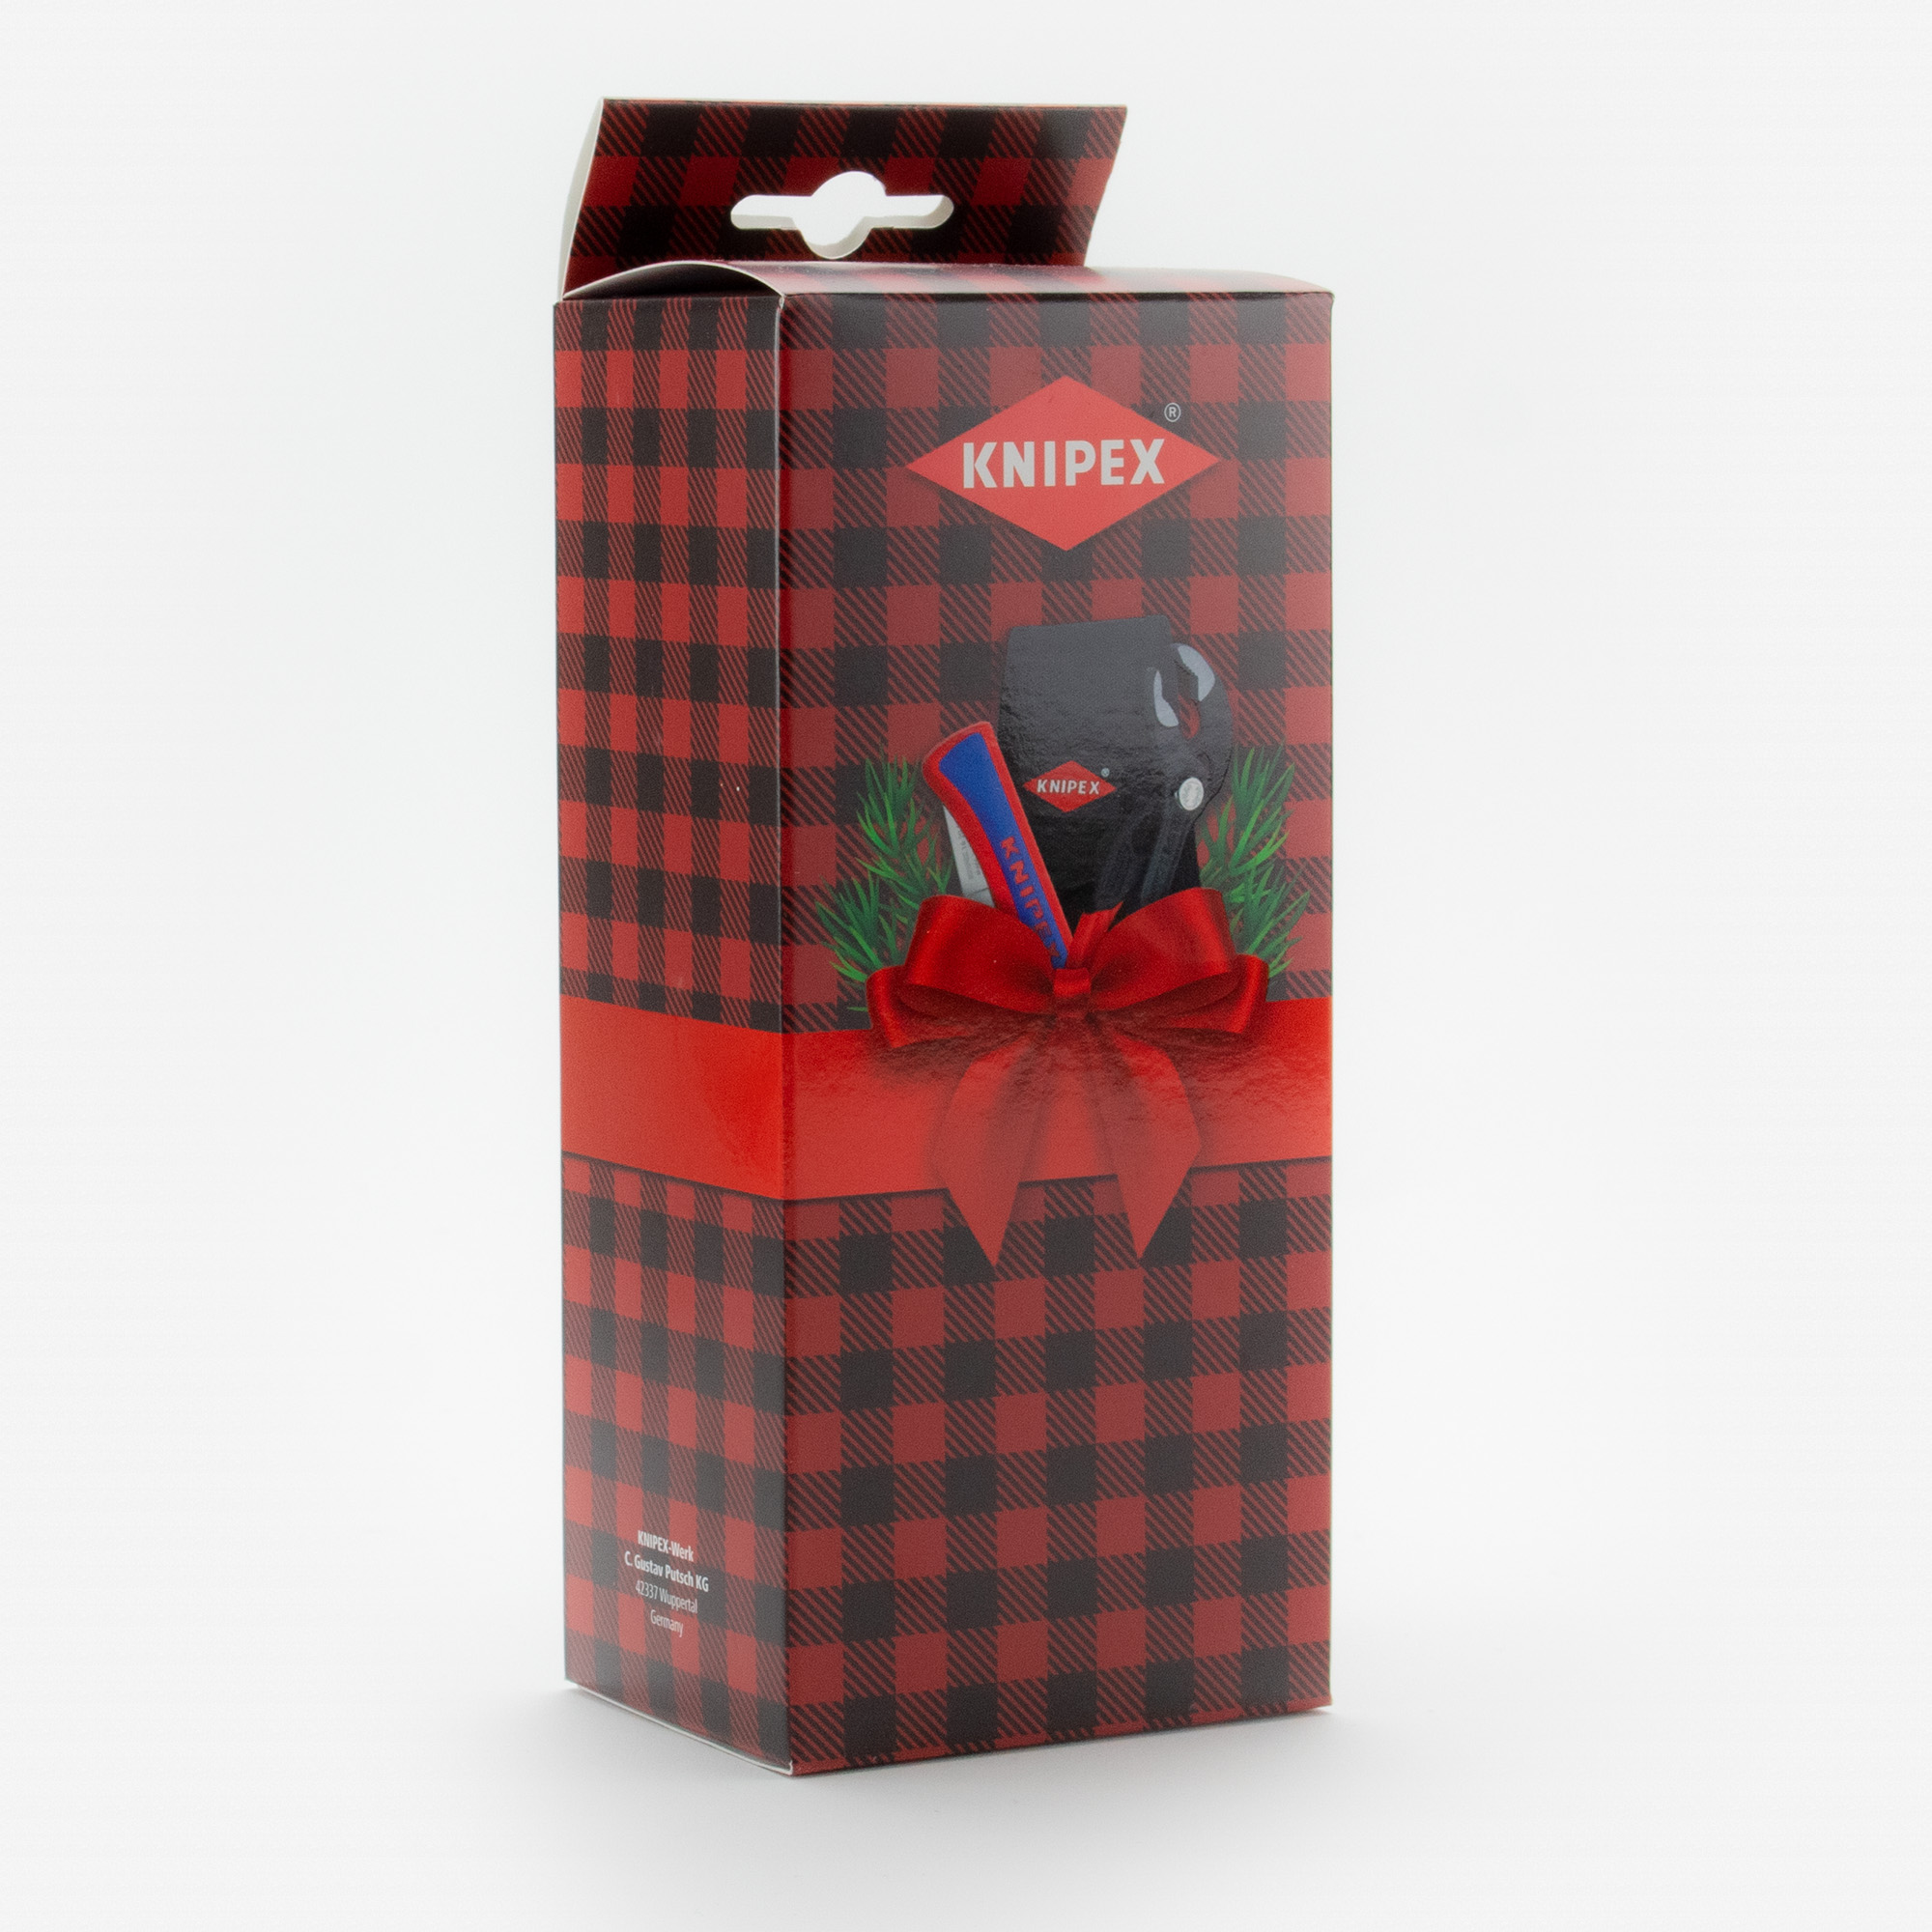 Knipex 00-20-72-56-US Cobra + Knife with Belt Pouch, 2021 Limited Edition Holiday Set, 3 Pieces - KC Tool